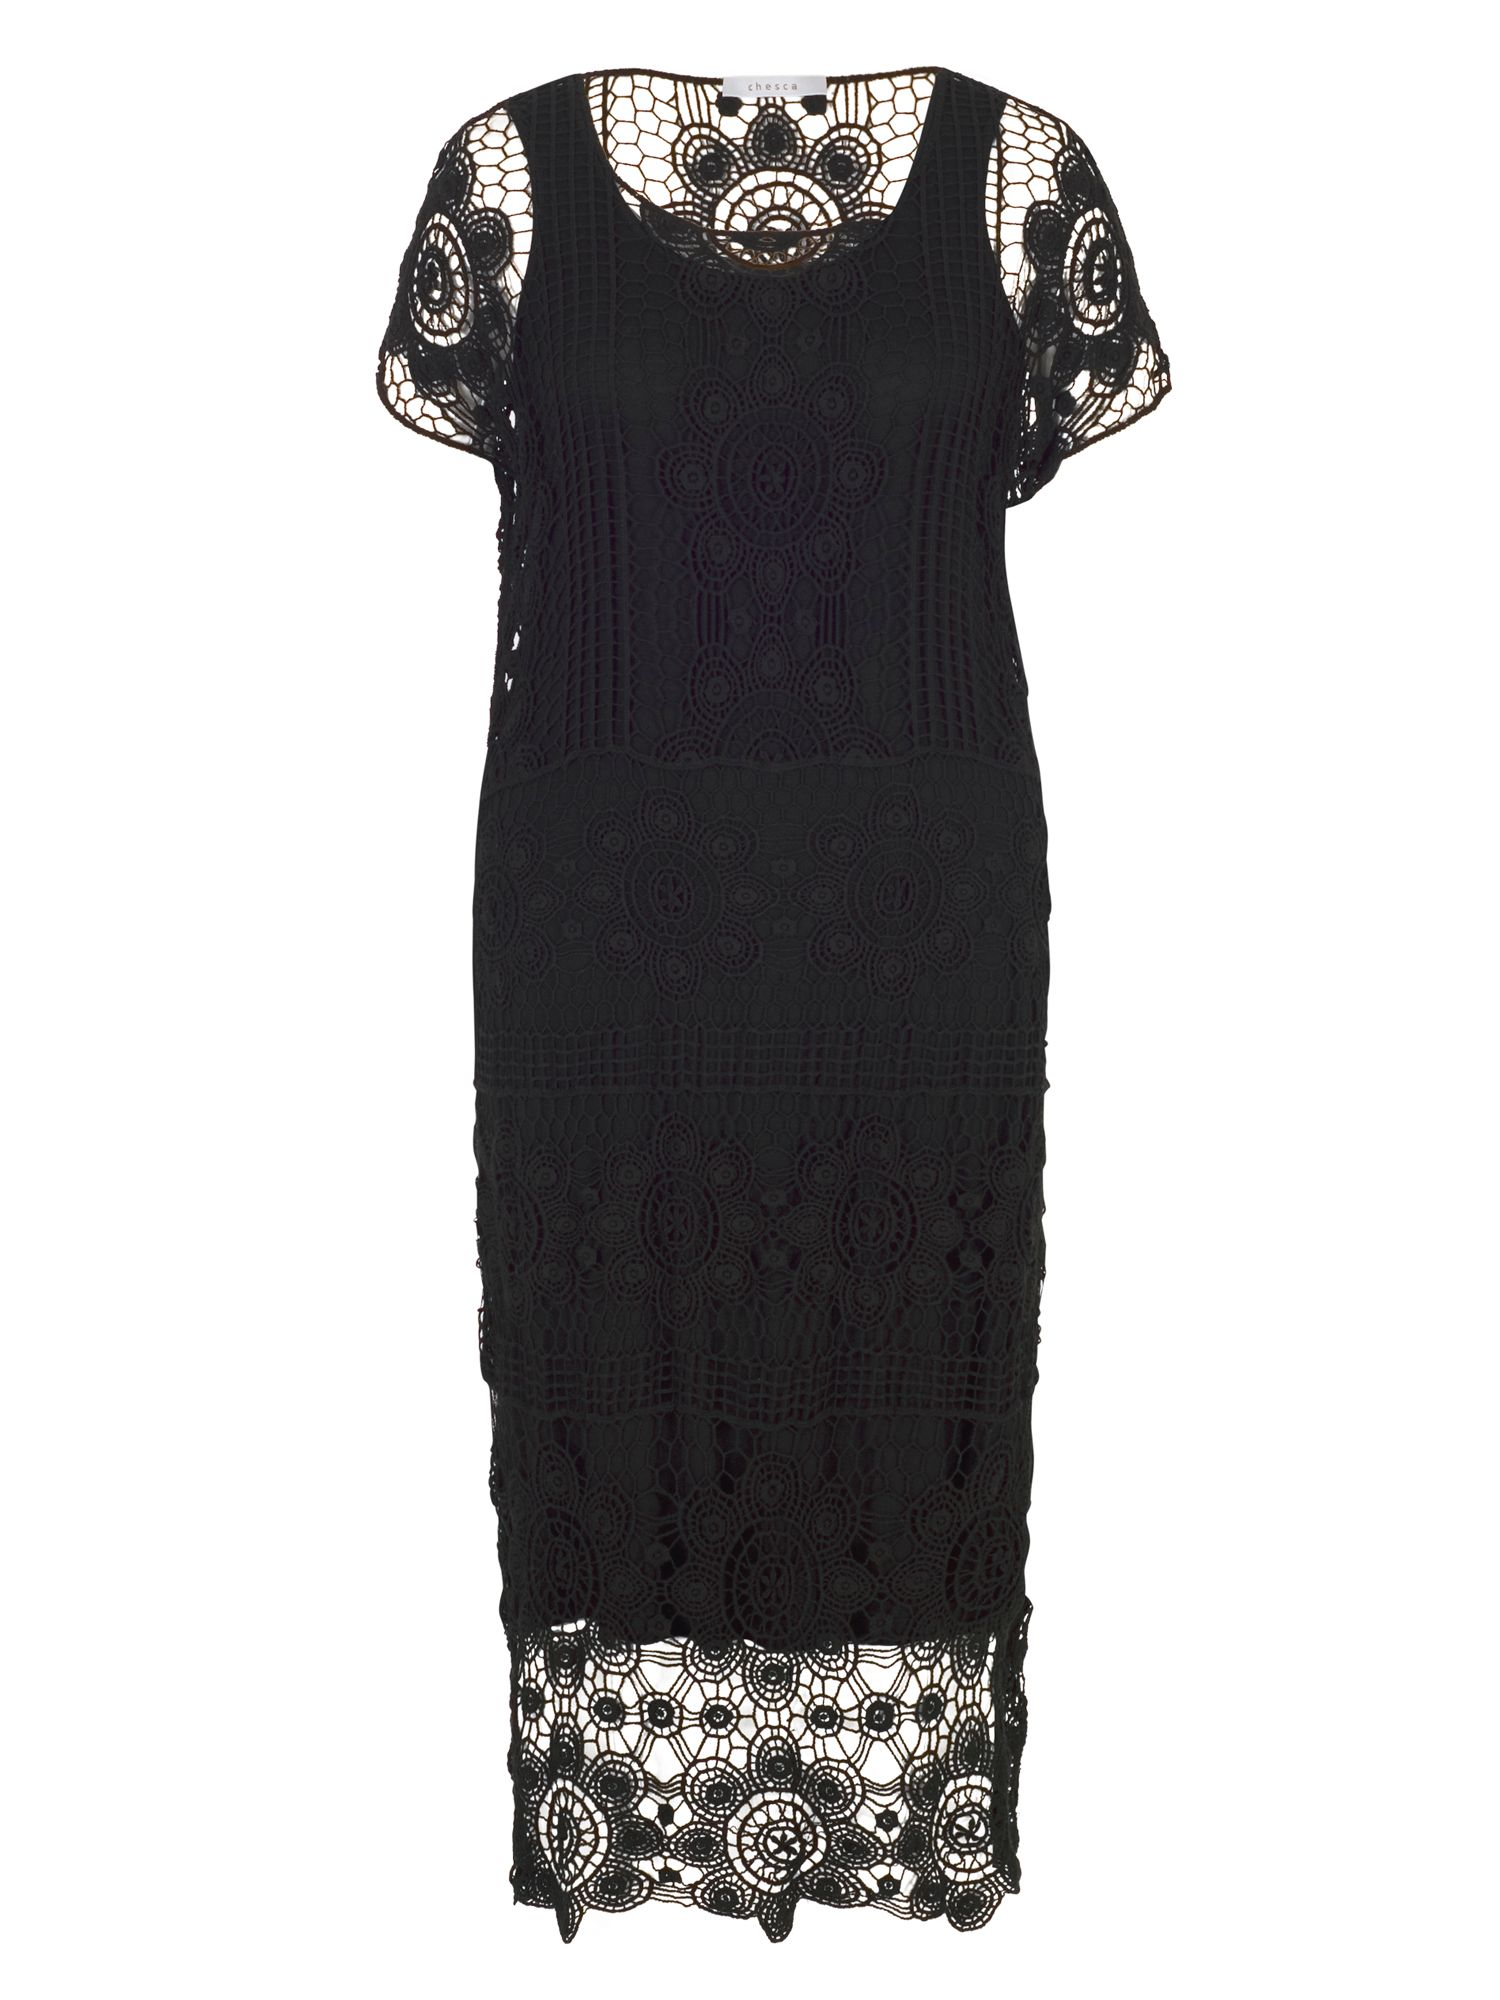 Chesca Crochet Dress With Separate Lining, Black